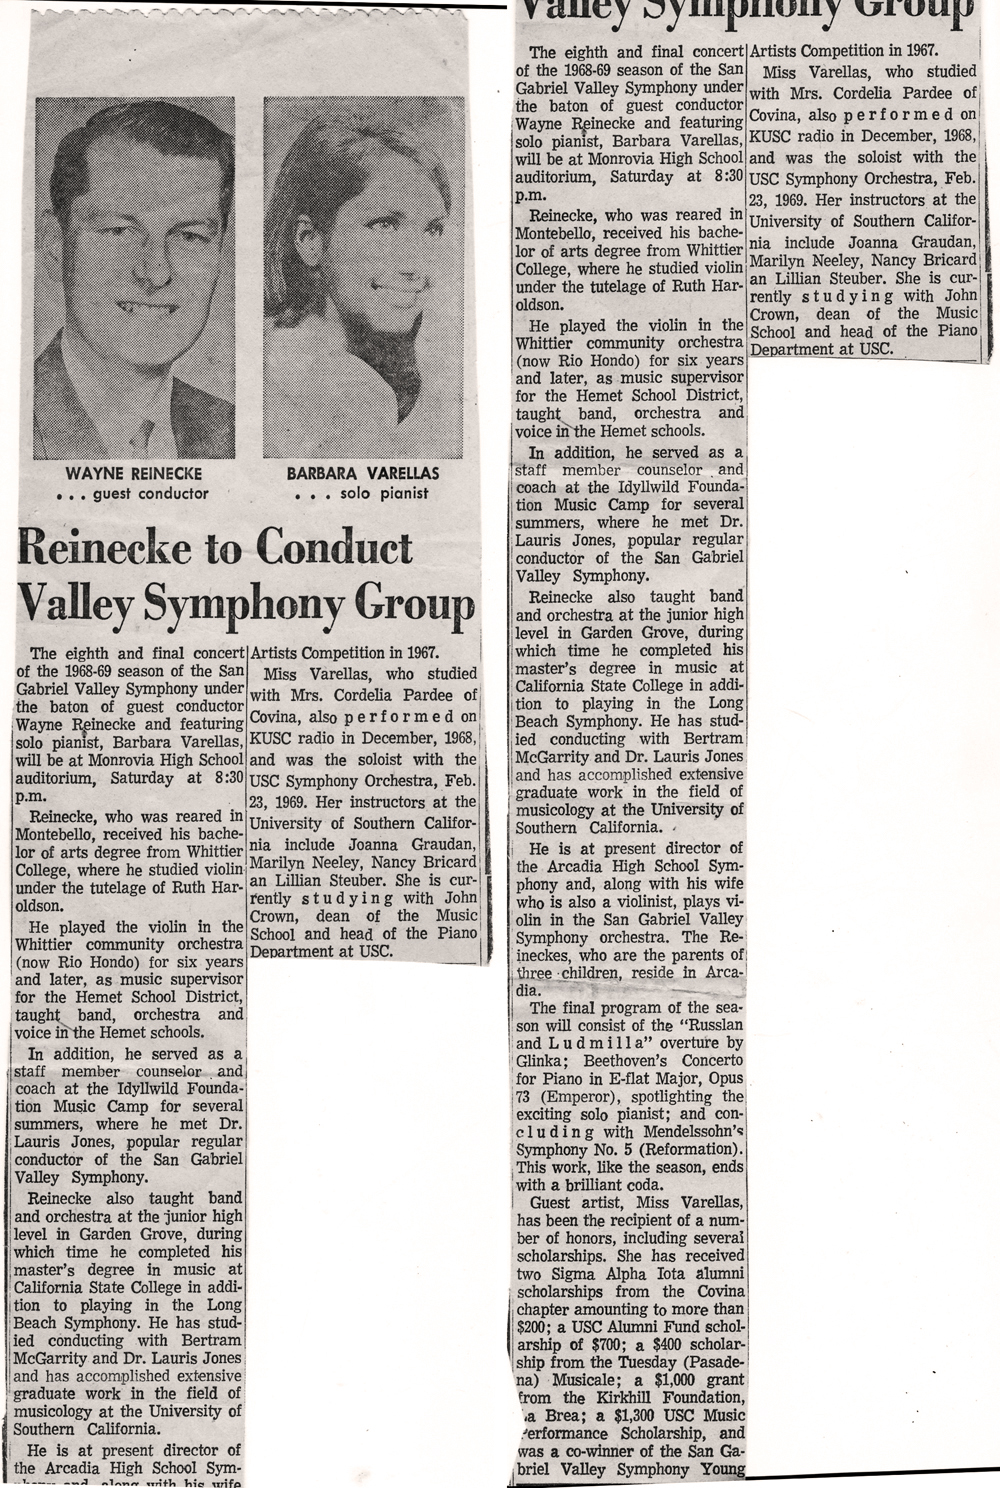 Founder Wayne Reneicke  to Conduct Valley Symphony Group, 1969